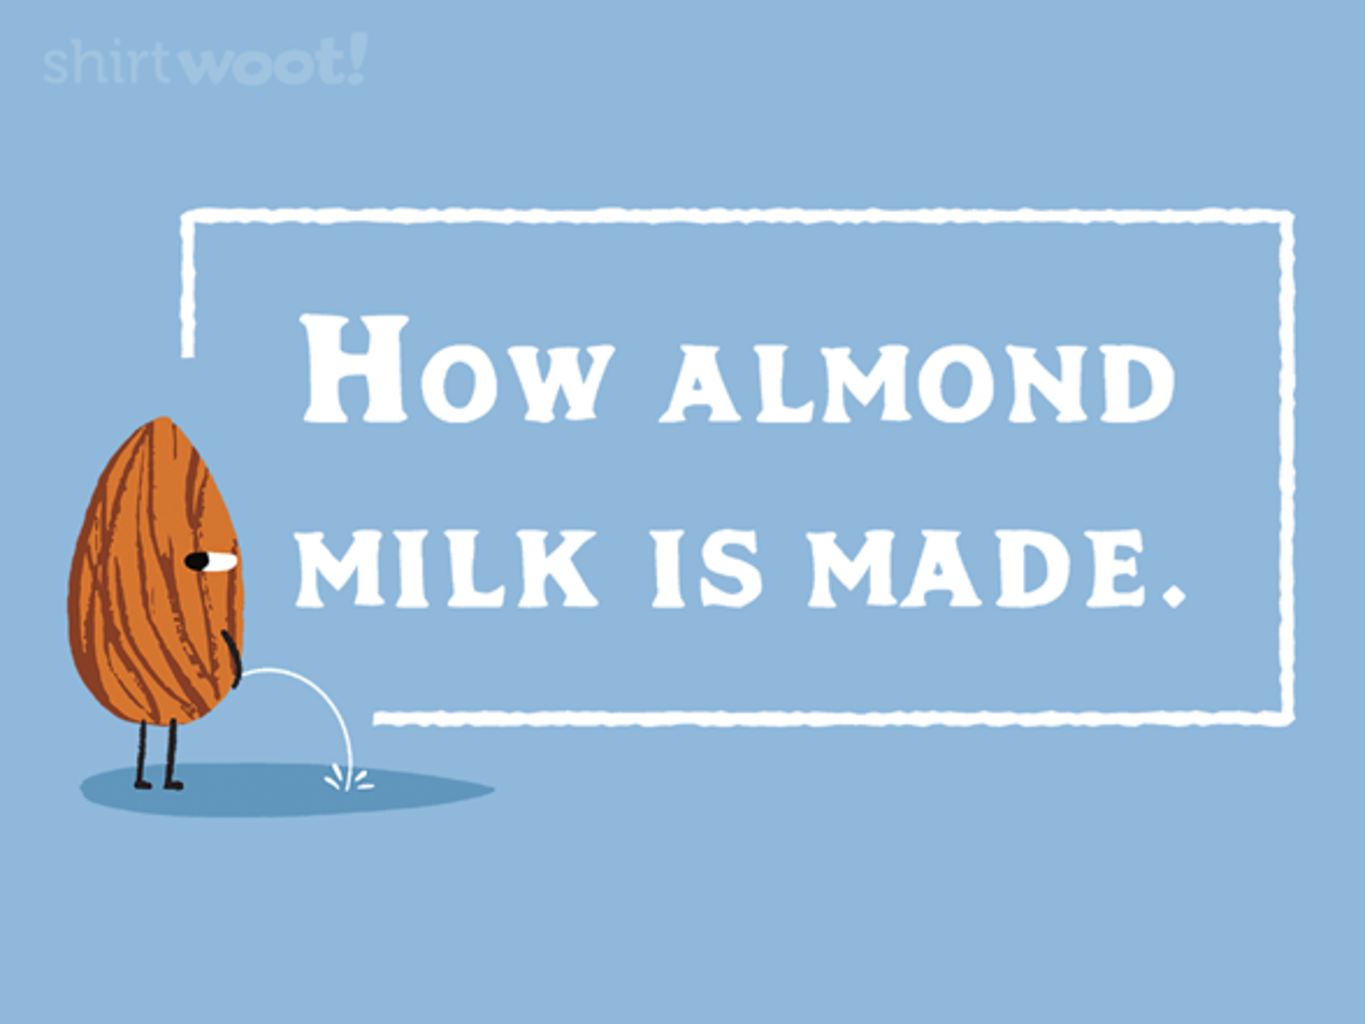 Woot!: How Almond Milk Is Made